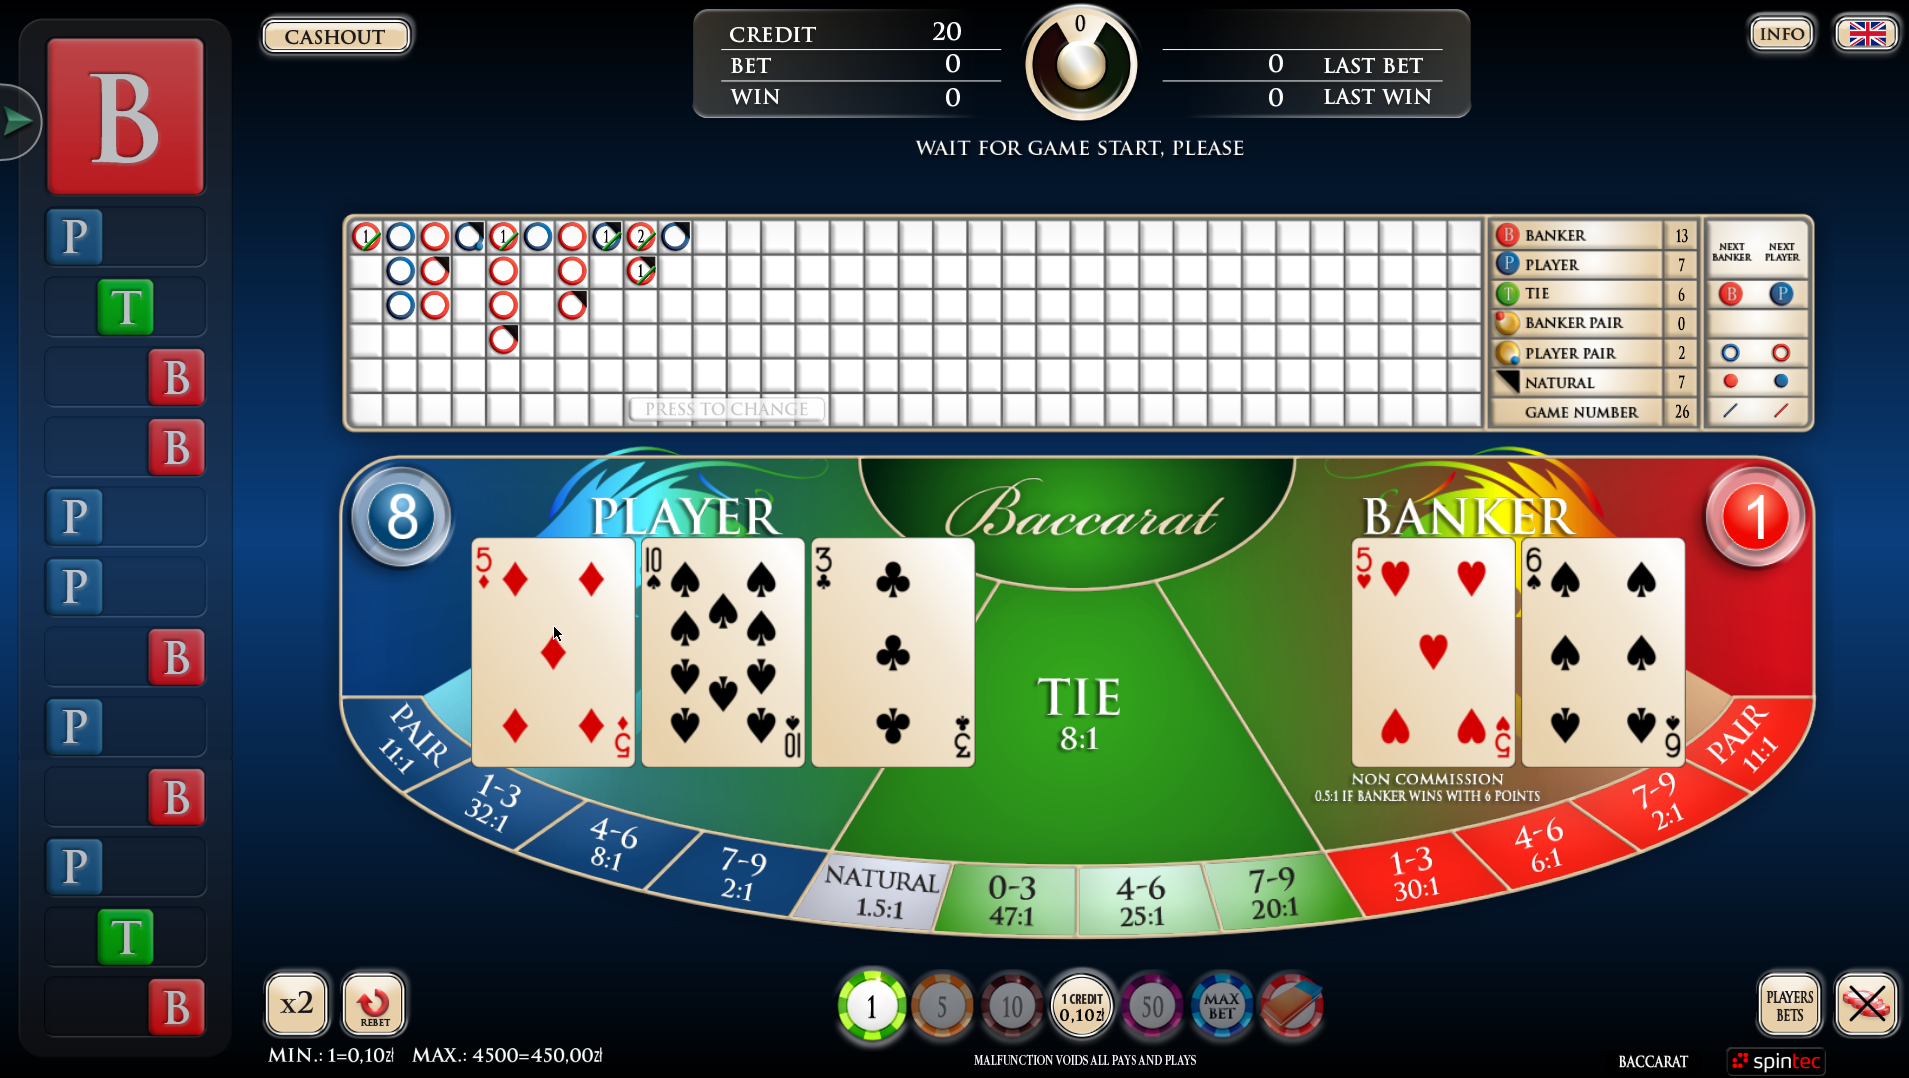 Karma Baccarat – A card game full of suspense and excitement!